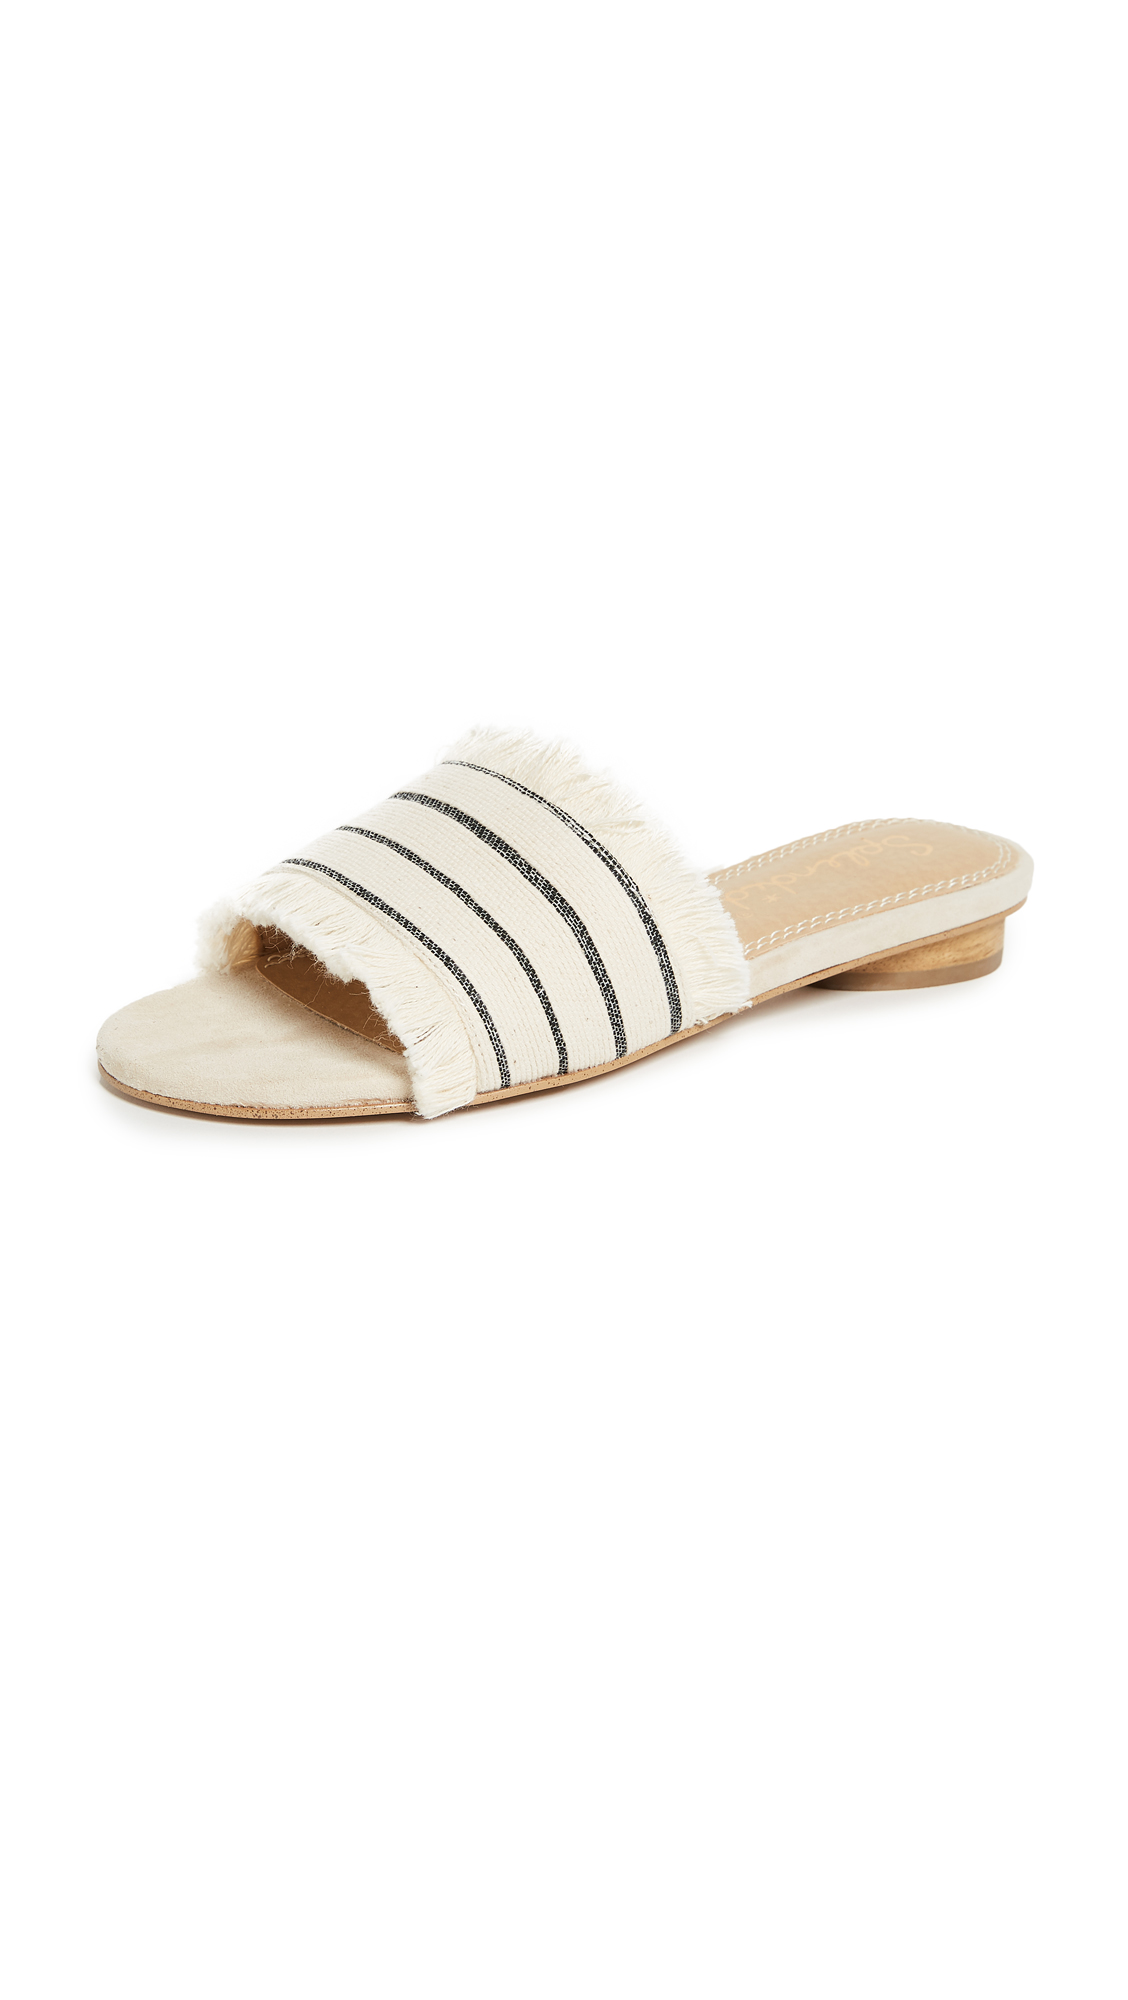 Splendid Baldwyn Striped Slides - Cream Combo